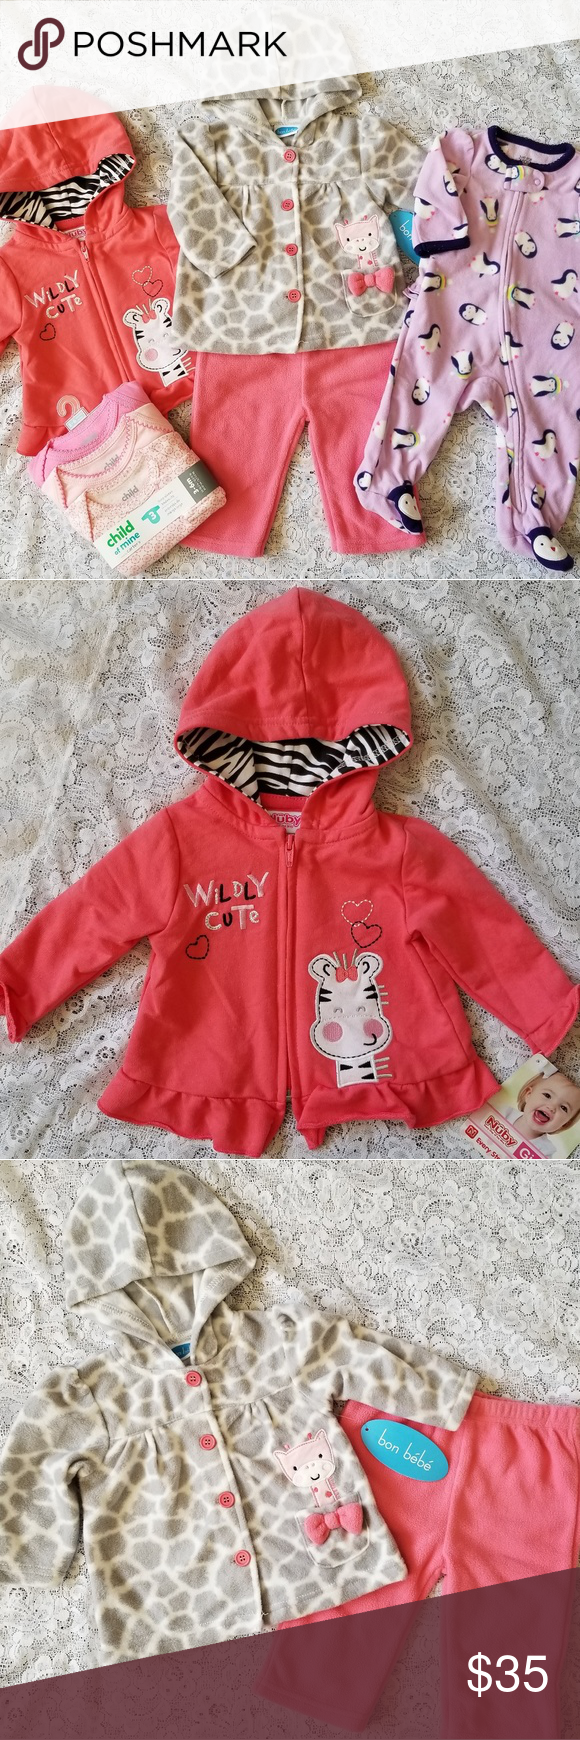 031cfcd67542 Baby Girl Fall Winter Clothing Bundle 3-6m NWT in 2018